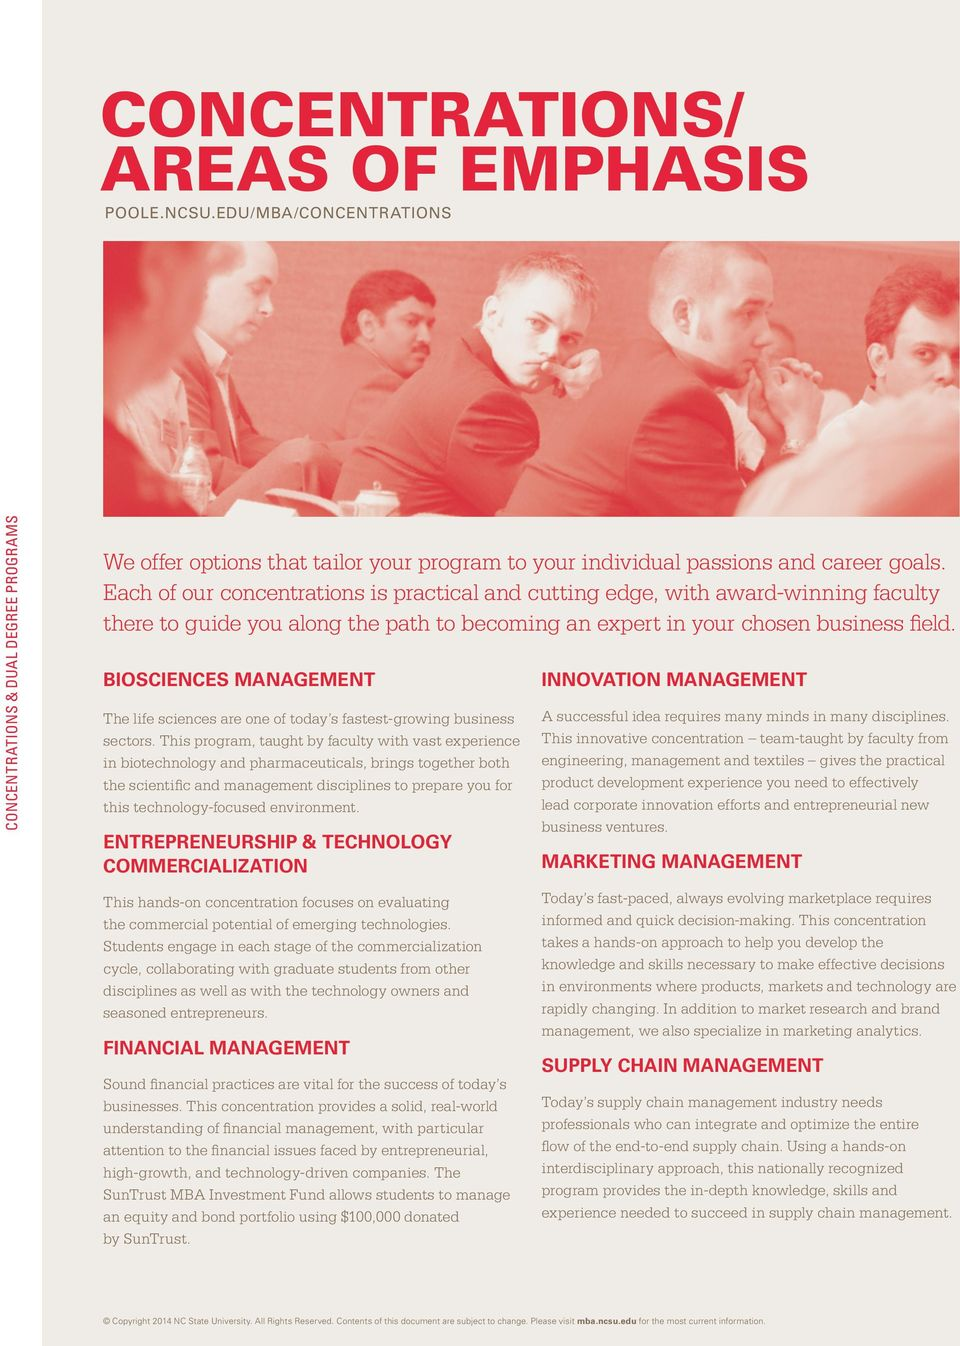 BIOSCIENCES MANAGEMENT The life sciences are one of today s fastest-growing business sectors.